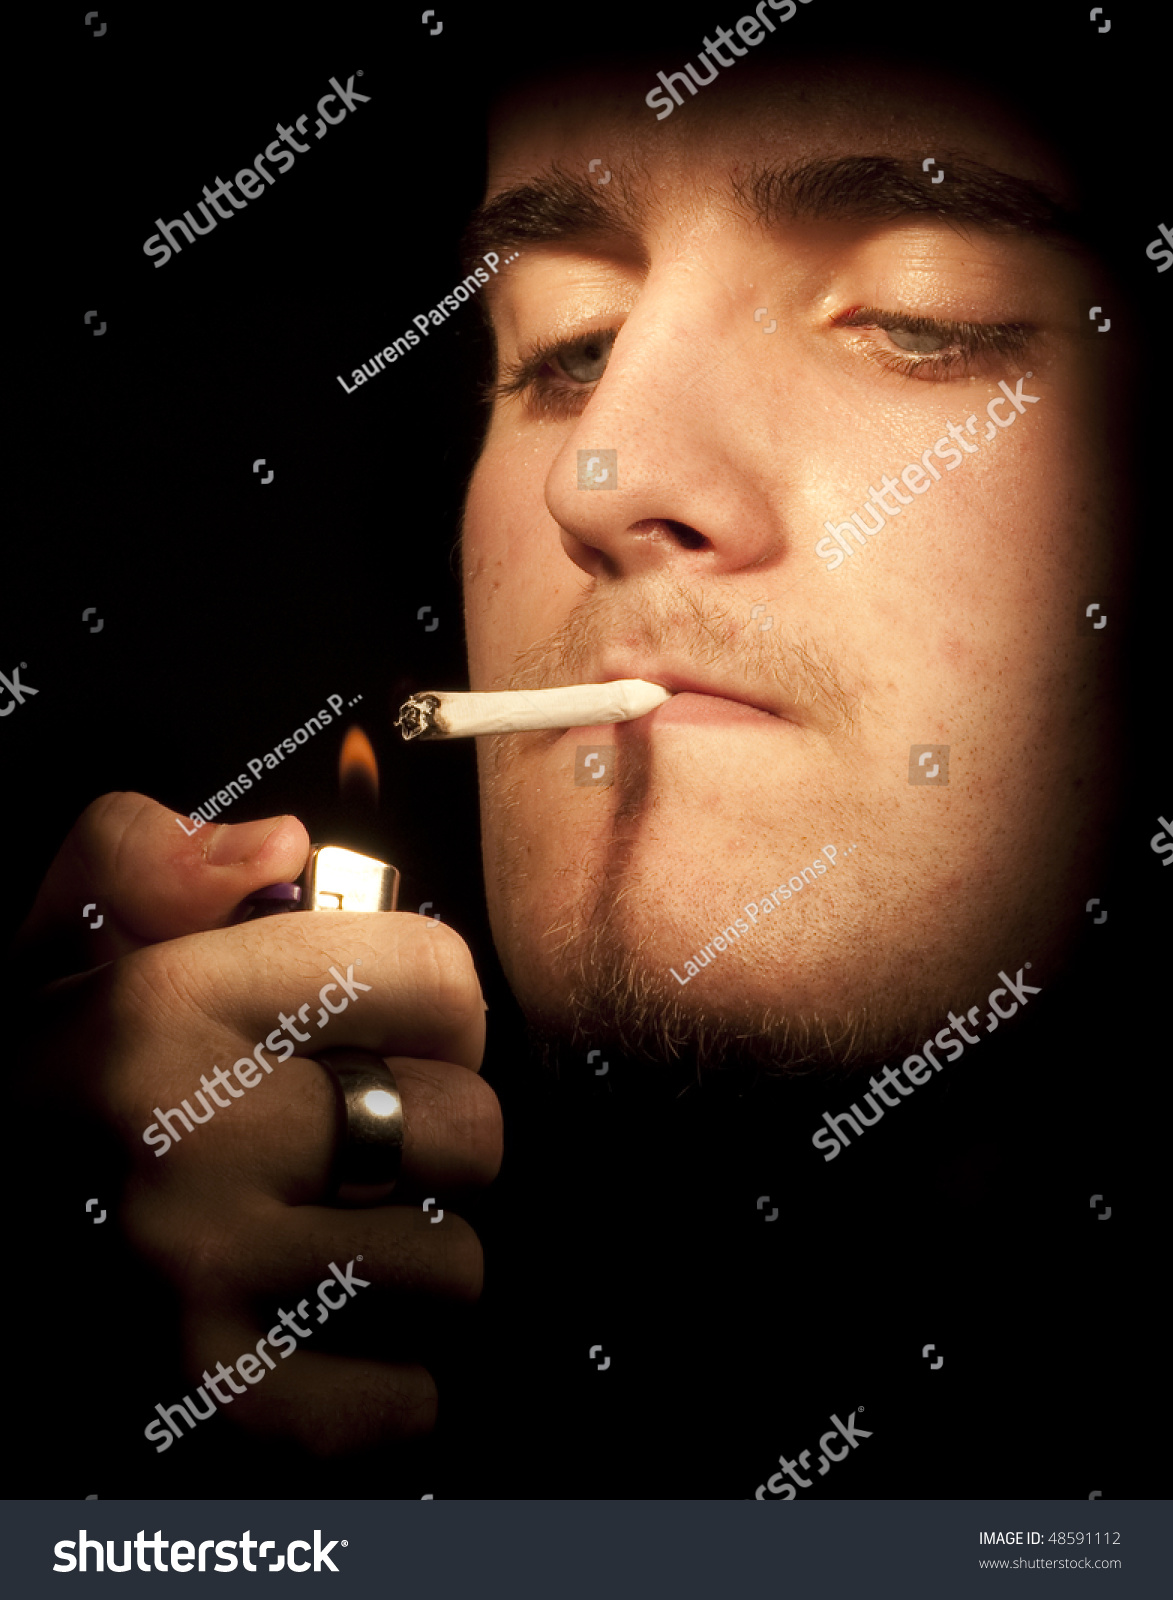 Young man lighting a cigarette. Focus emphasis on lighter and flame held in hand  sc 1 st  Shutterstock & Young Man Lighting Cigarette Focus Emphasis Stock Photo 48591112 ... azcodes.com